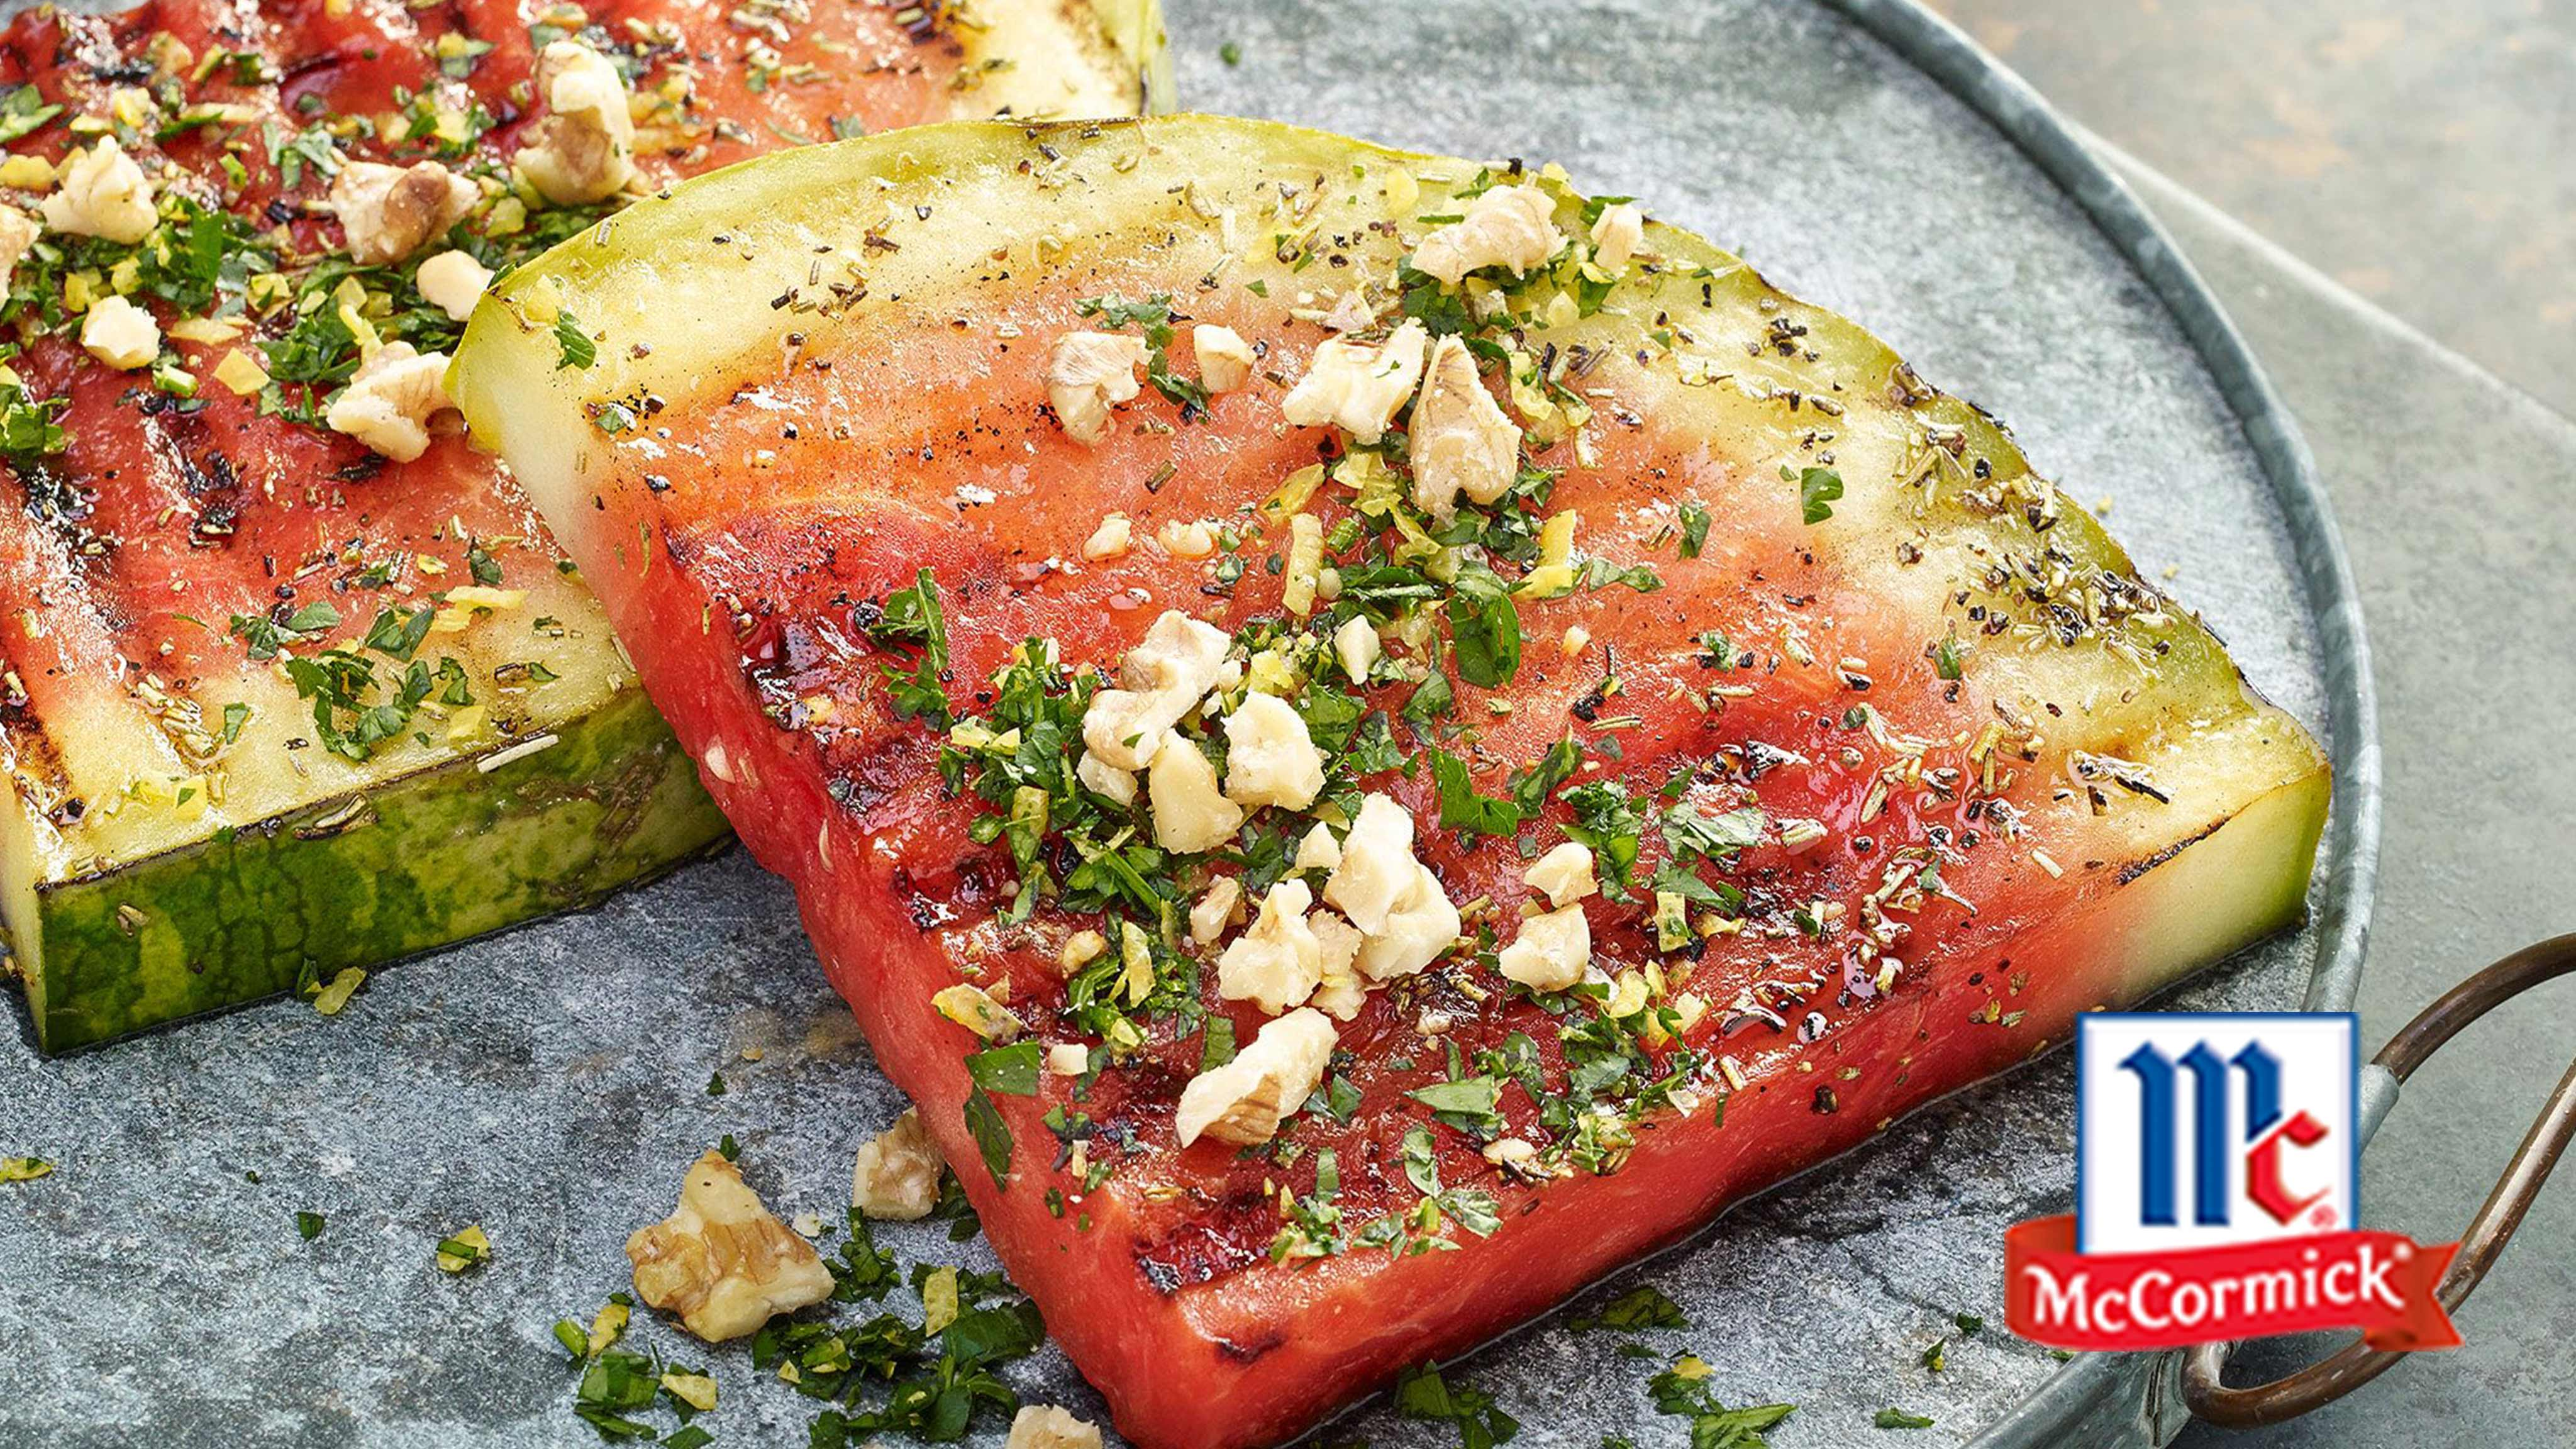 Image for Recipe Grilled Watermelon Steaks with Walnut Gremolata